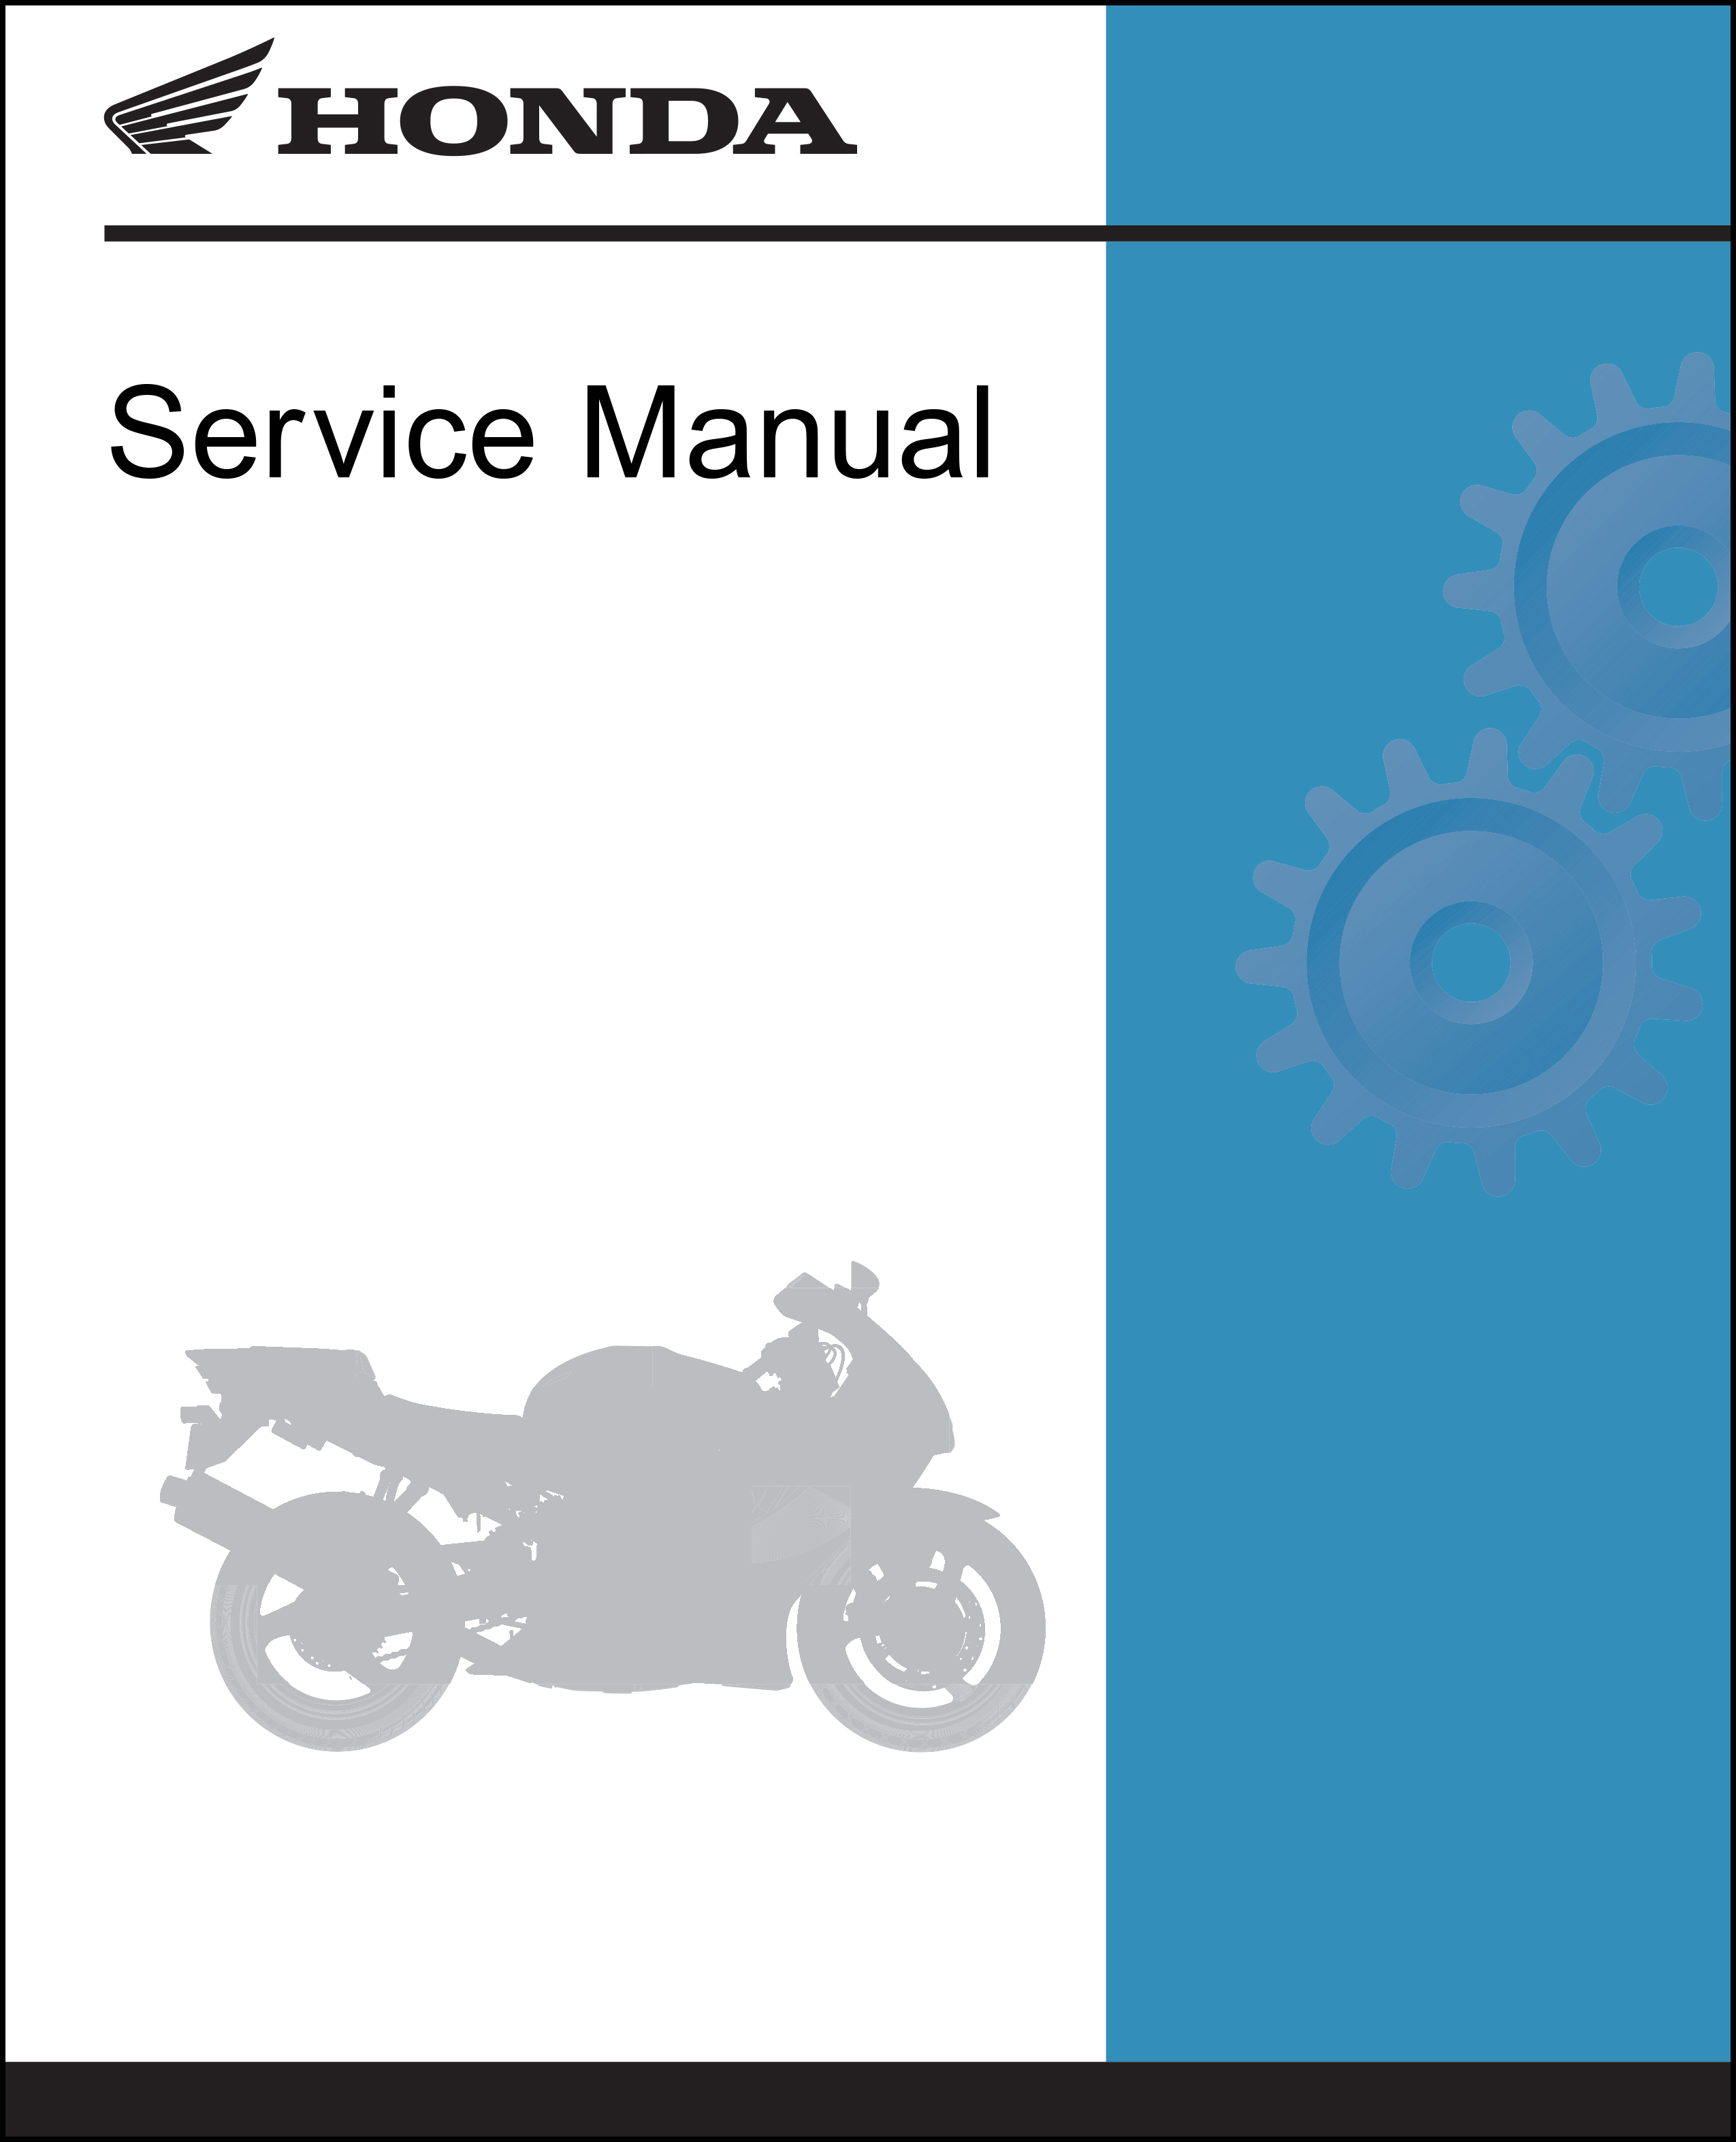 Honda 1995-2003 TRX400FW Service Manual Shop Repair 95 1996 96 1997 97 1998  98